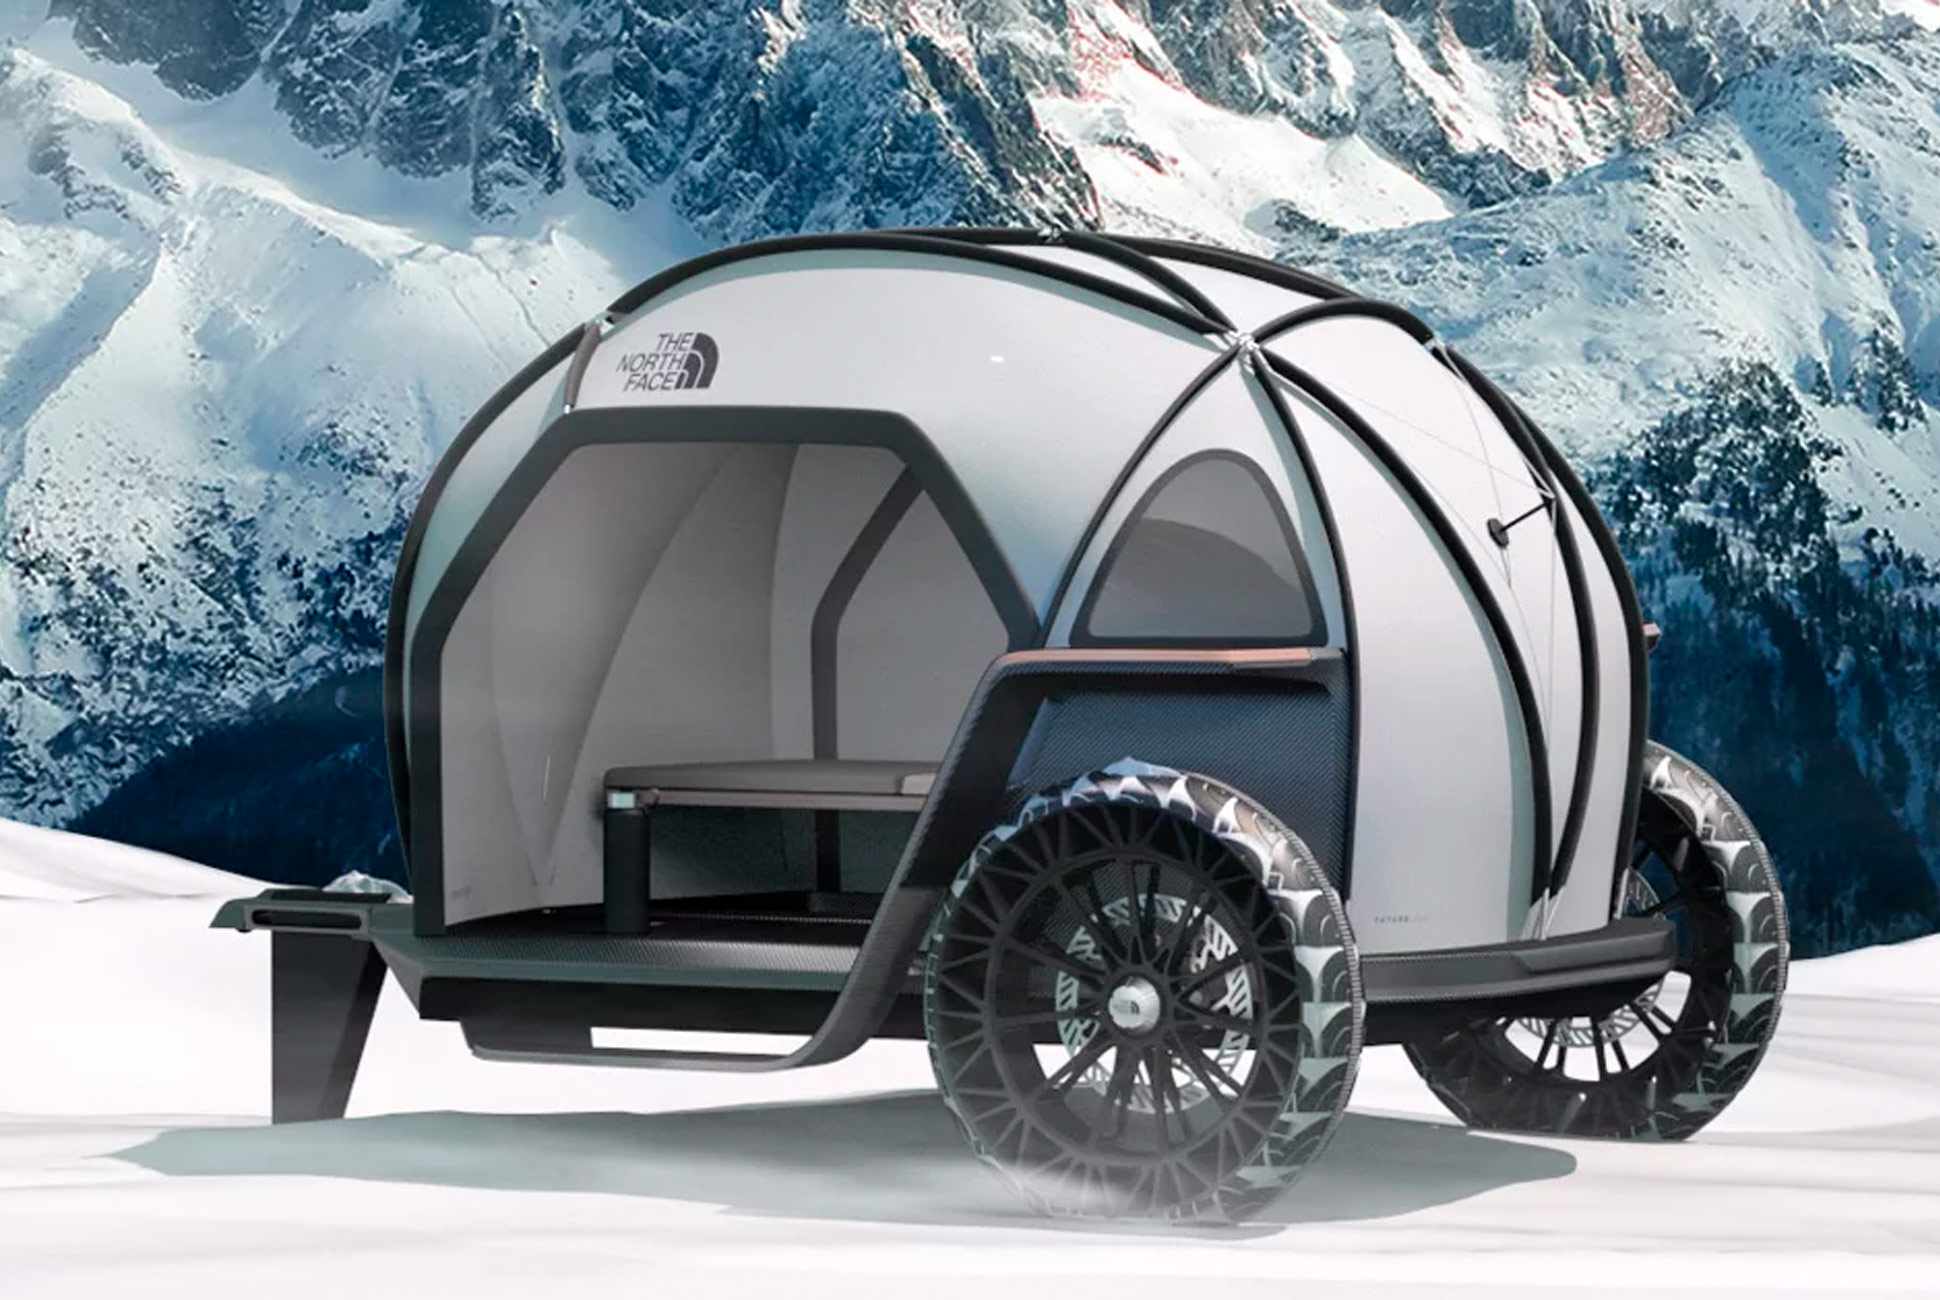 BMW and The North Face concept